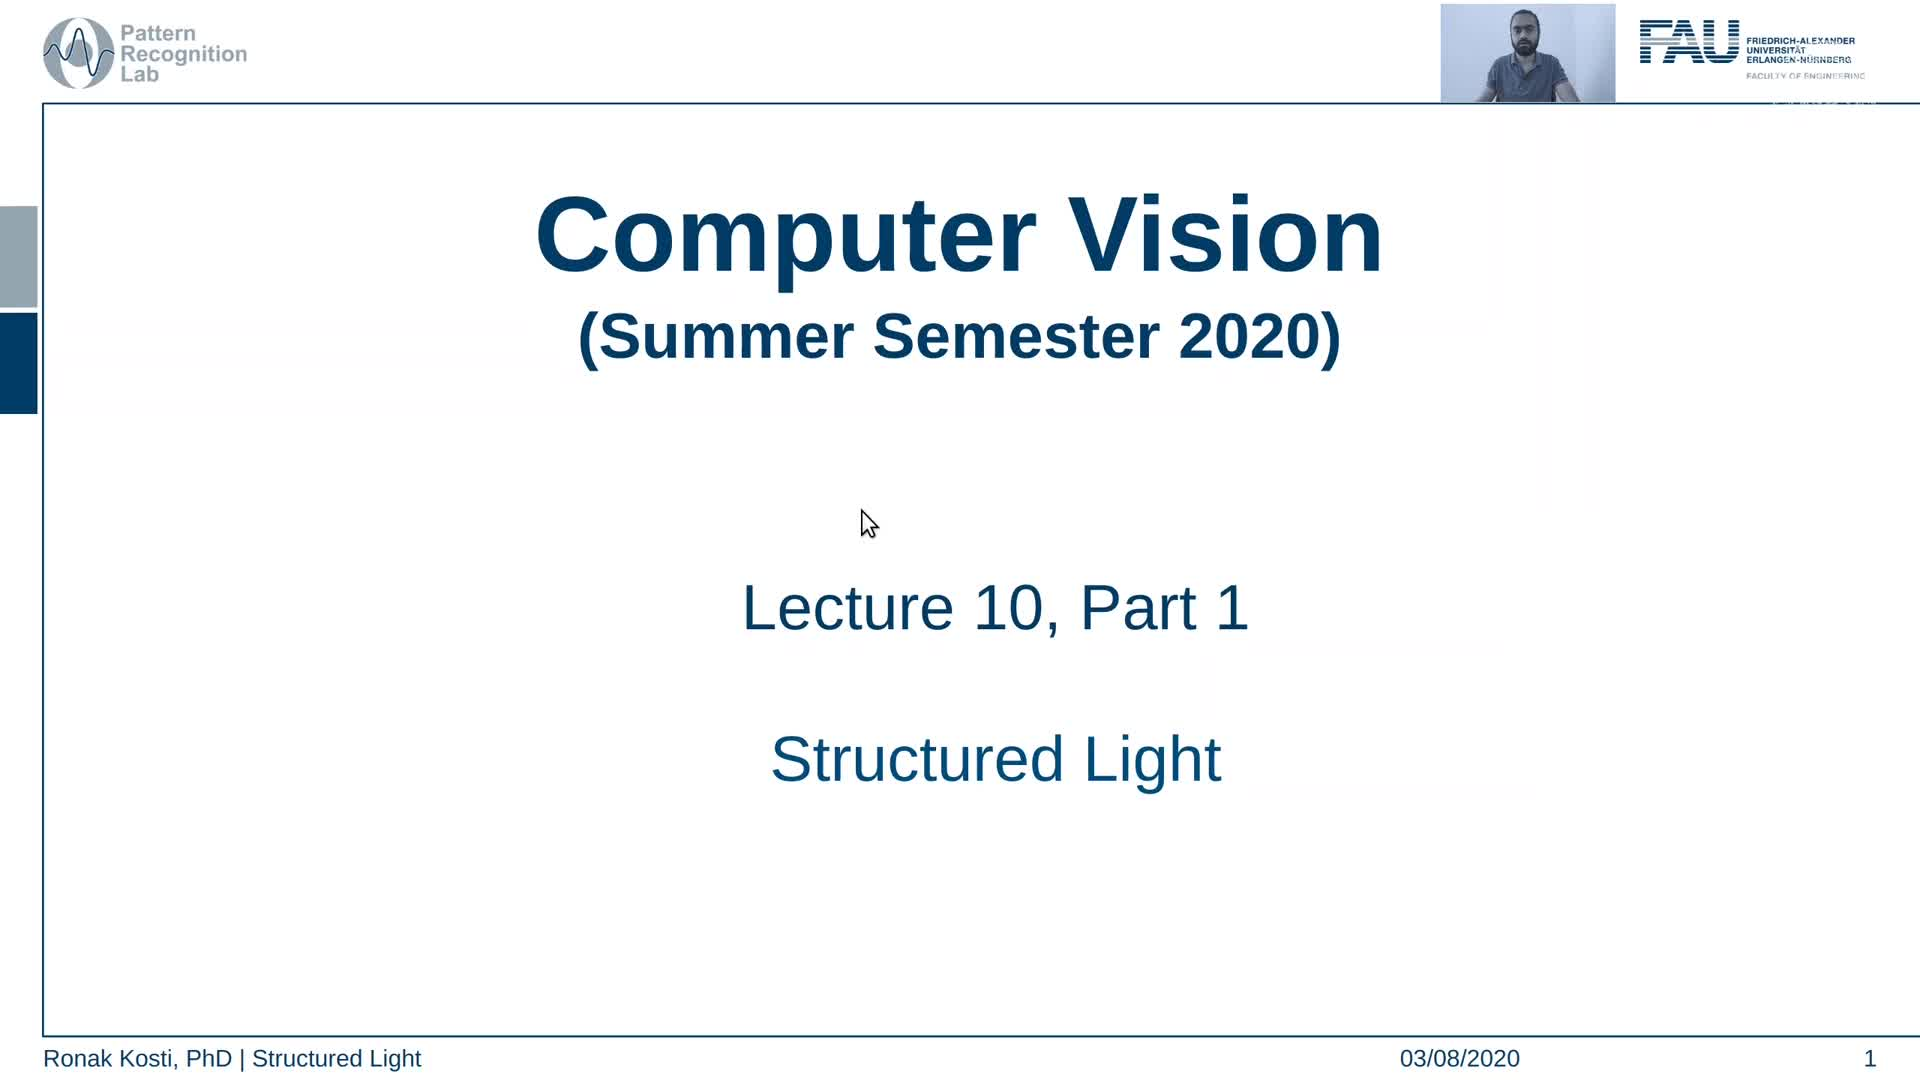 Structured Light (Lecture 10, Part 1) preview image